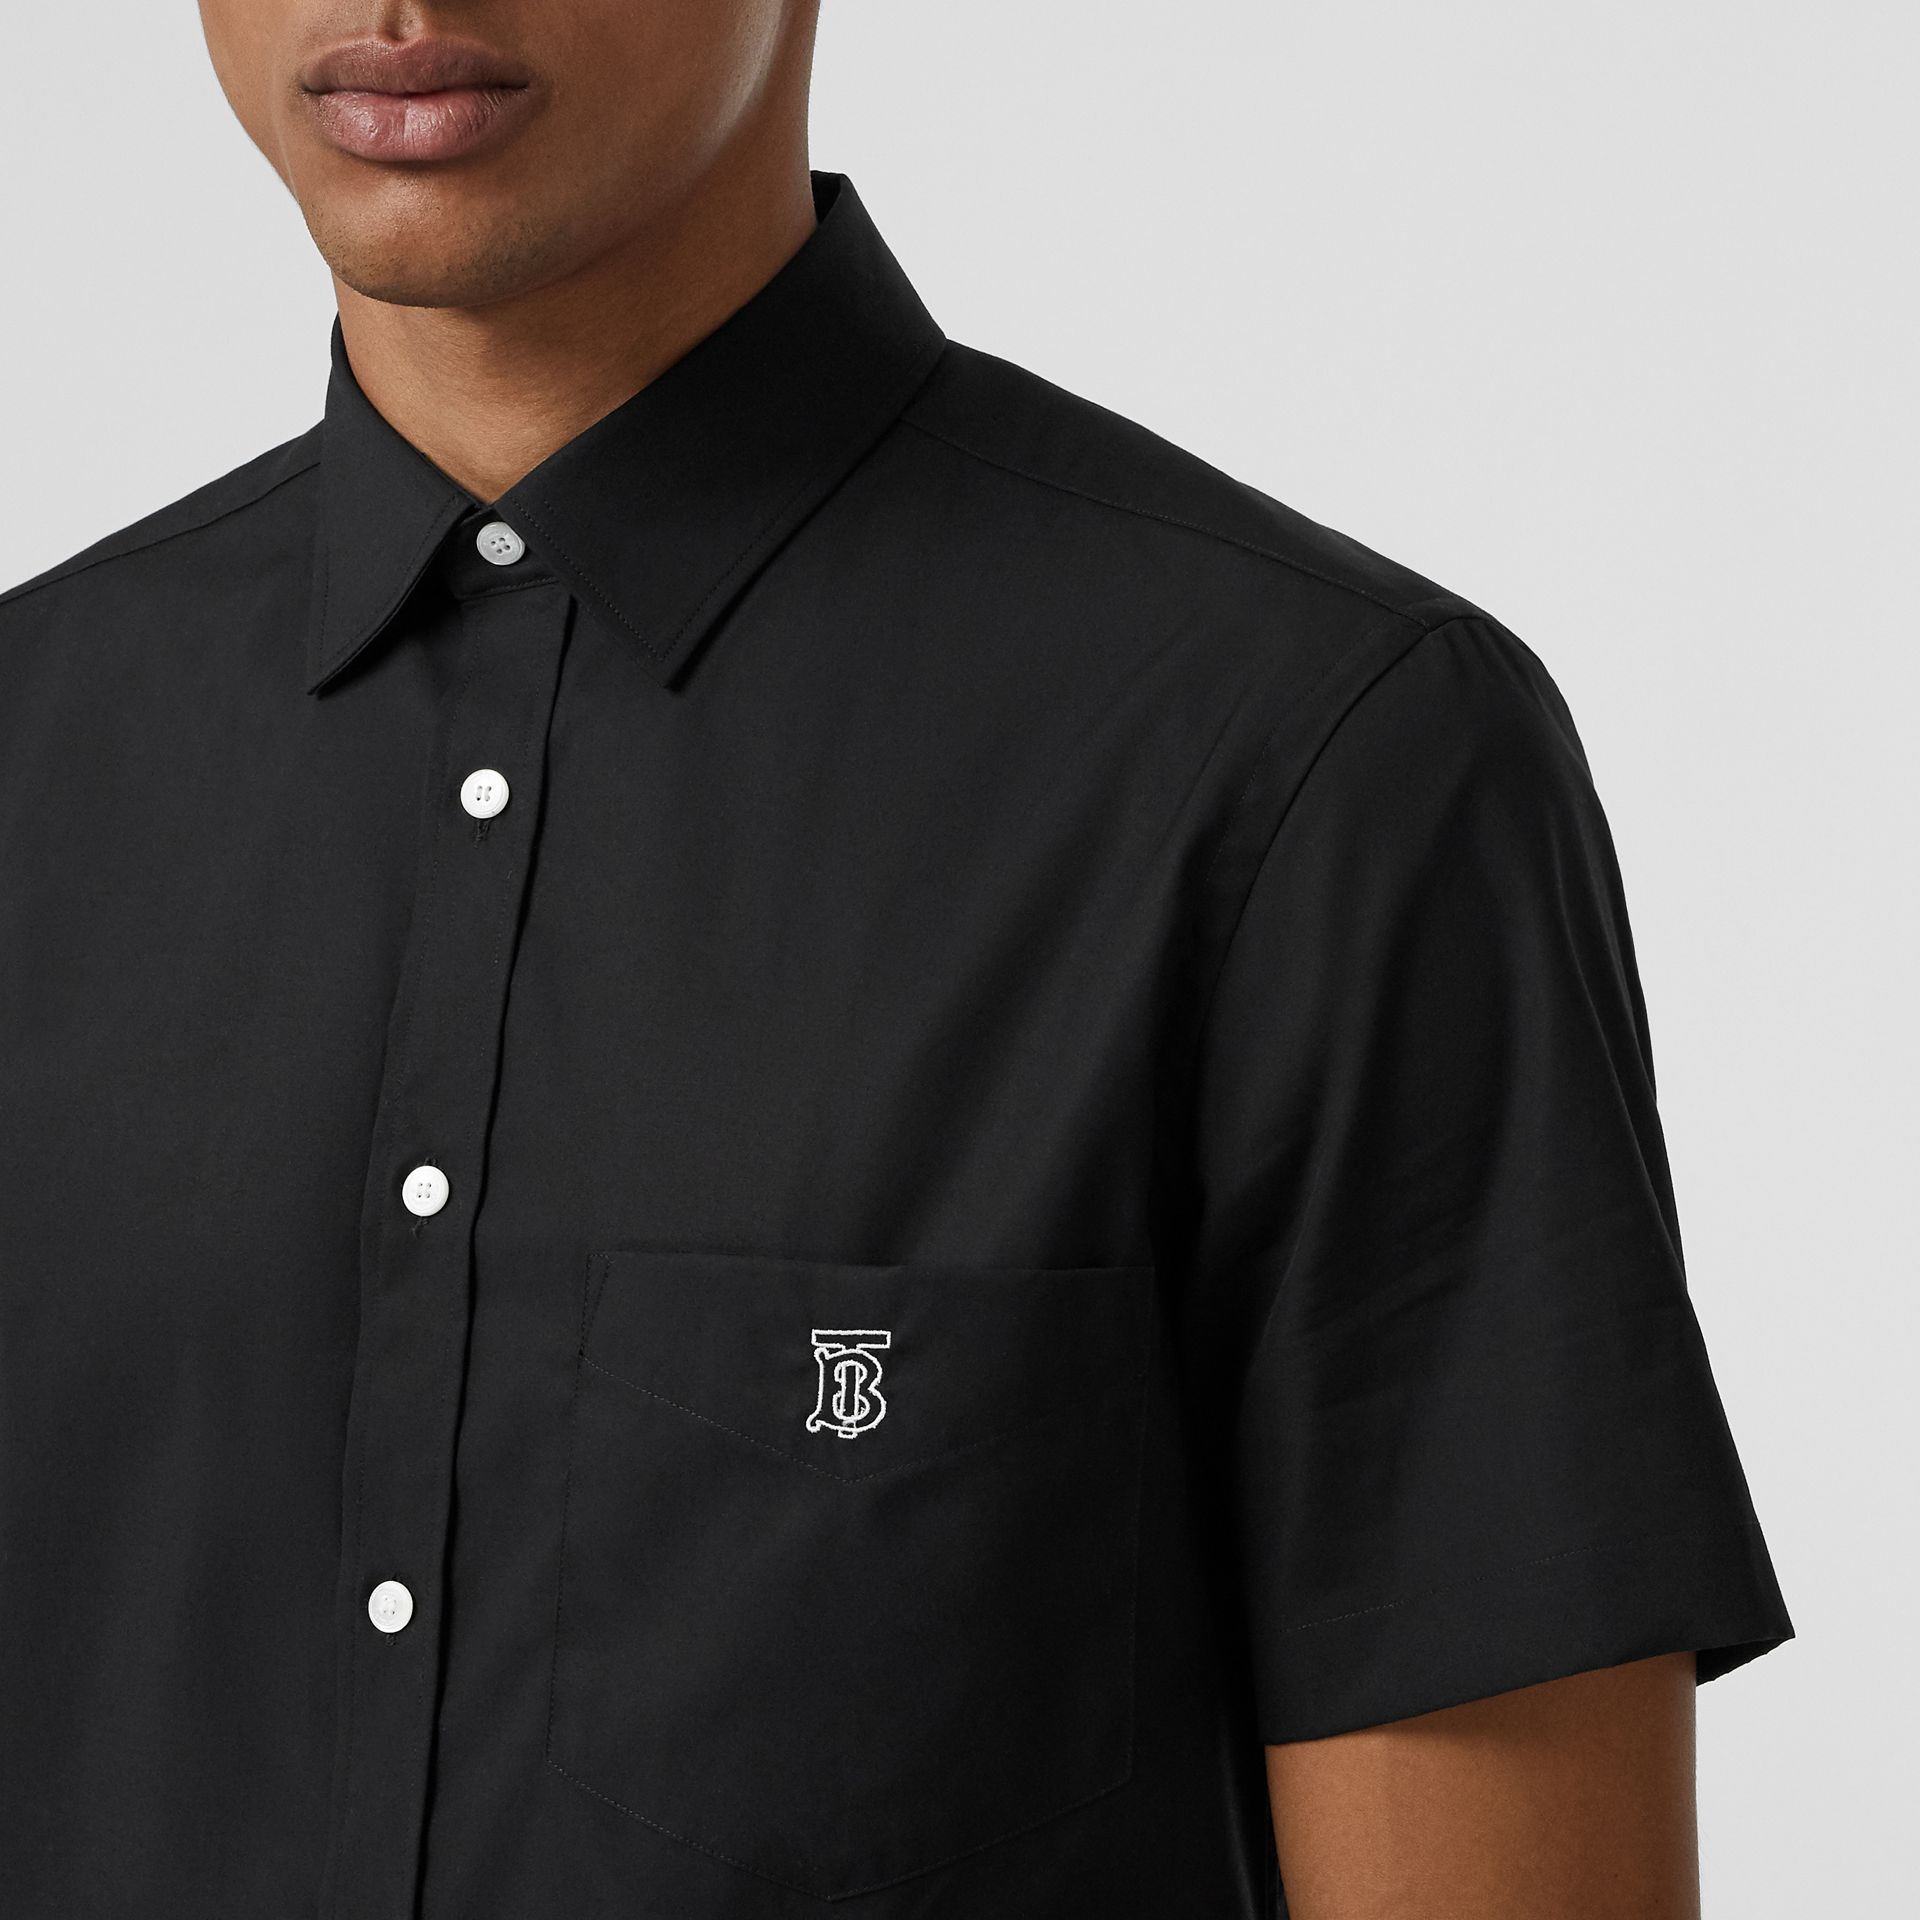 Short-sleeve Monogram Motif Stretch Cotton Shirt in Black - Men | Burberry Singapore - gallery image 1